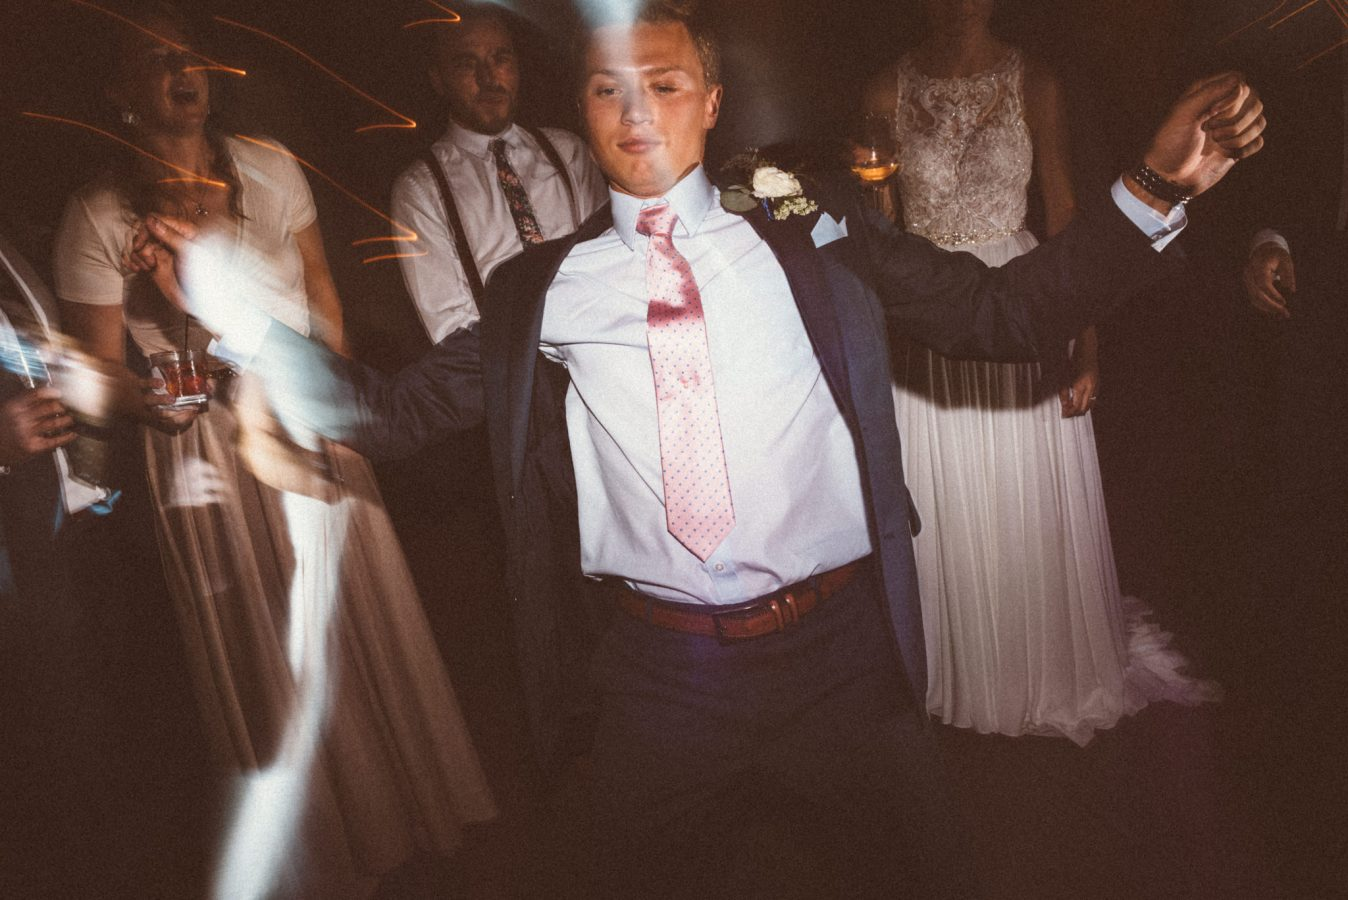 Peoria central Illinois wedding film photography by Kristen Kaiser